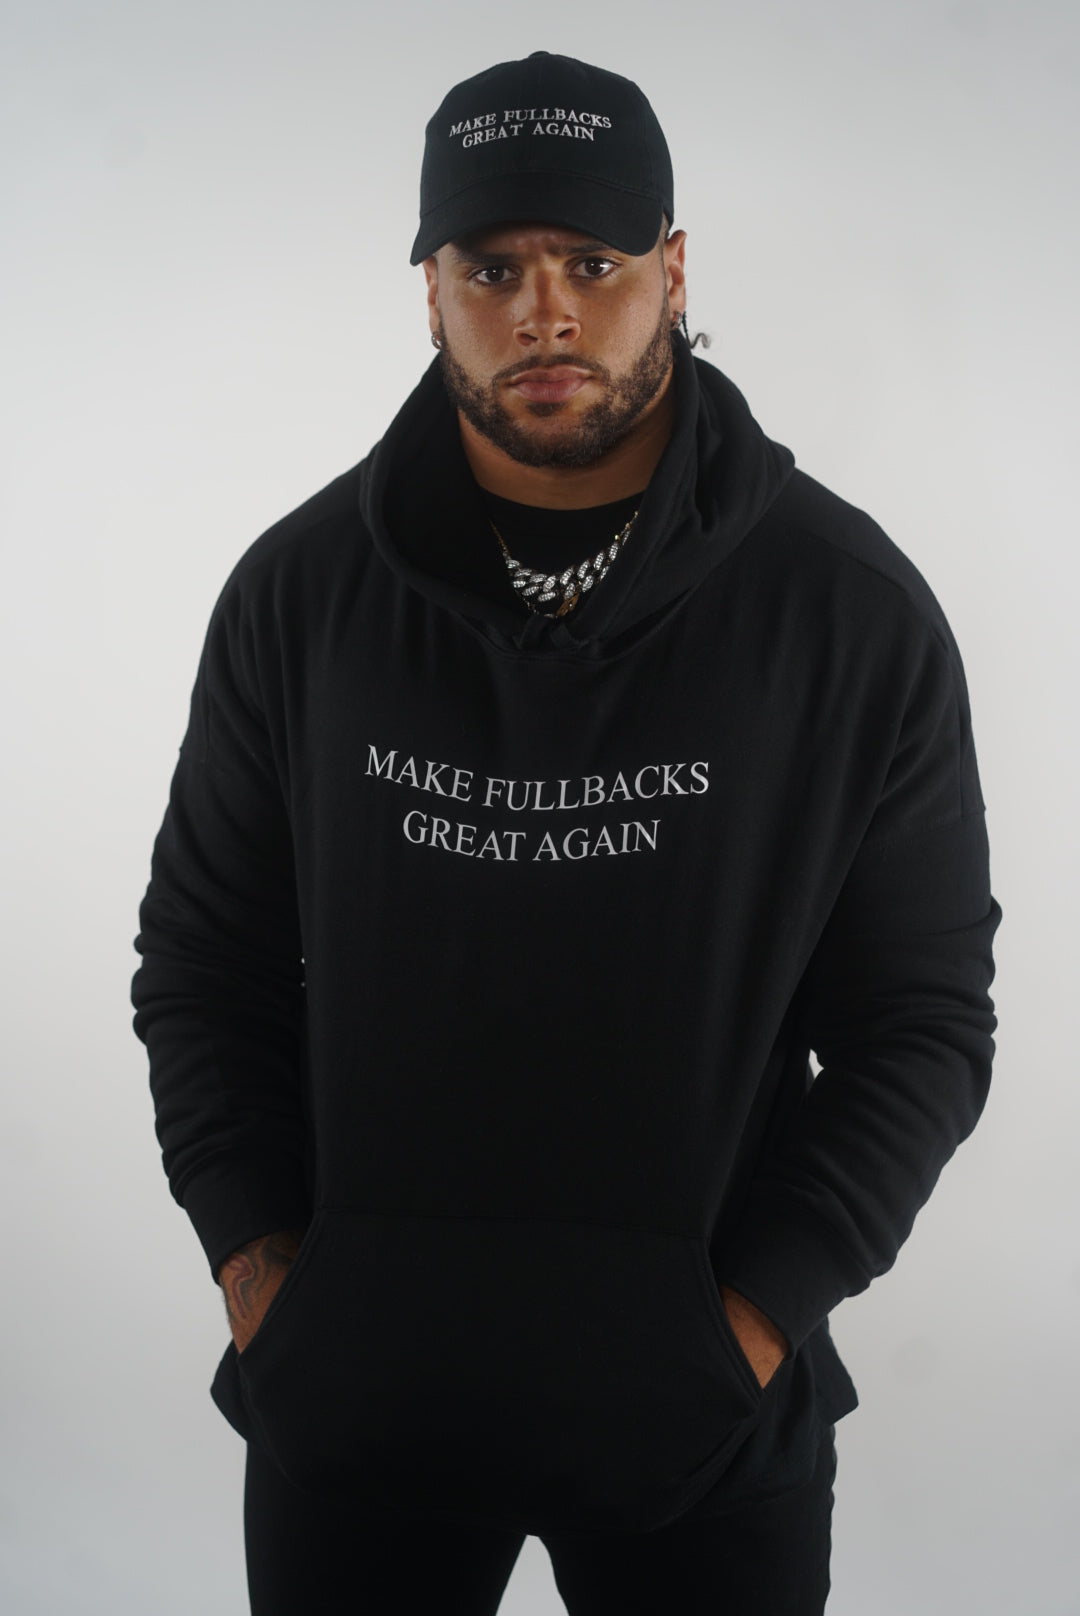 MFGA Black Hoodie-Make Fullbacks Great Again by Keith Smith